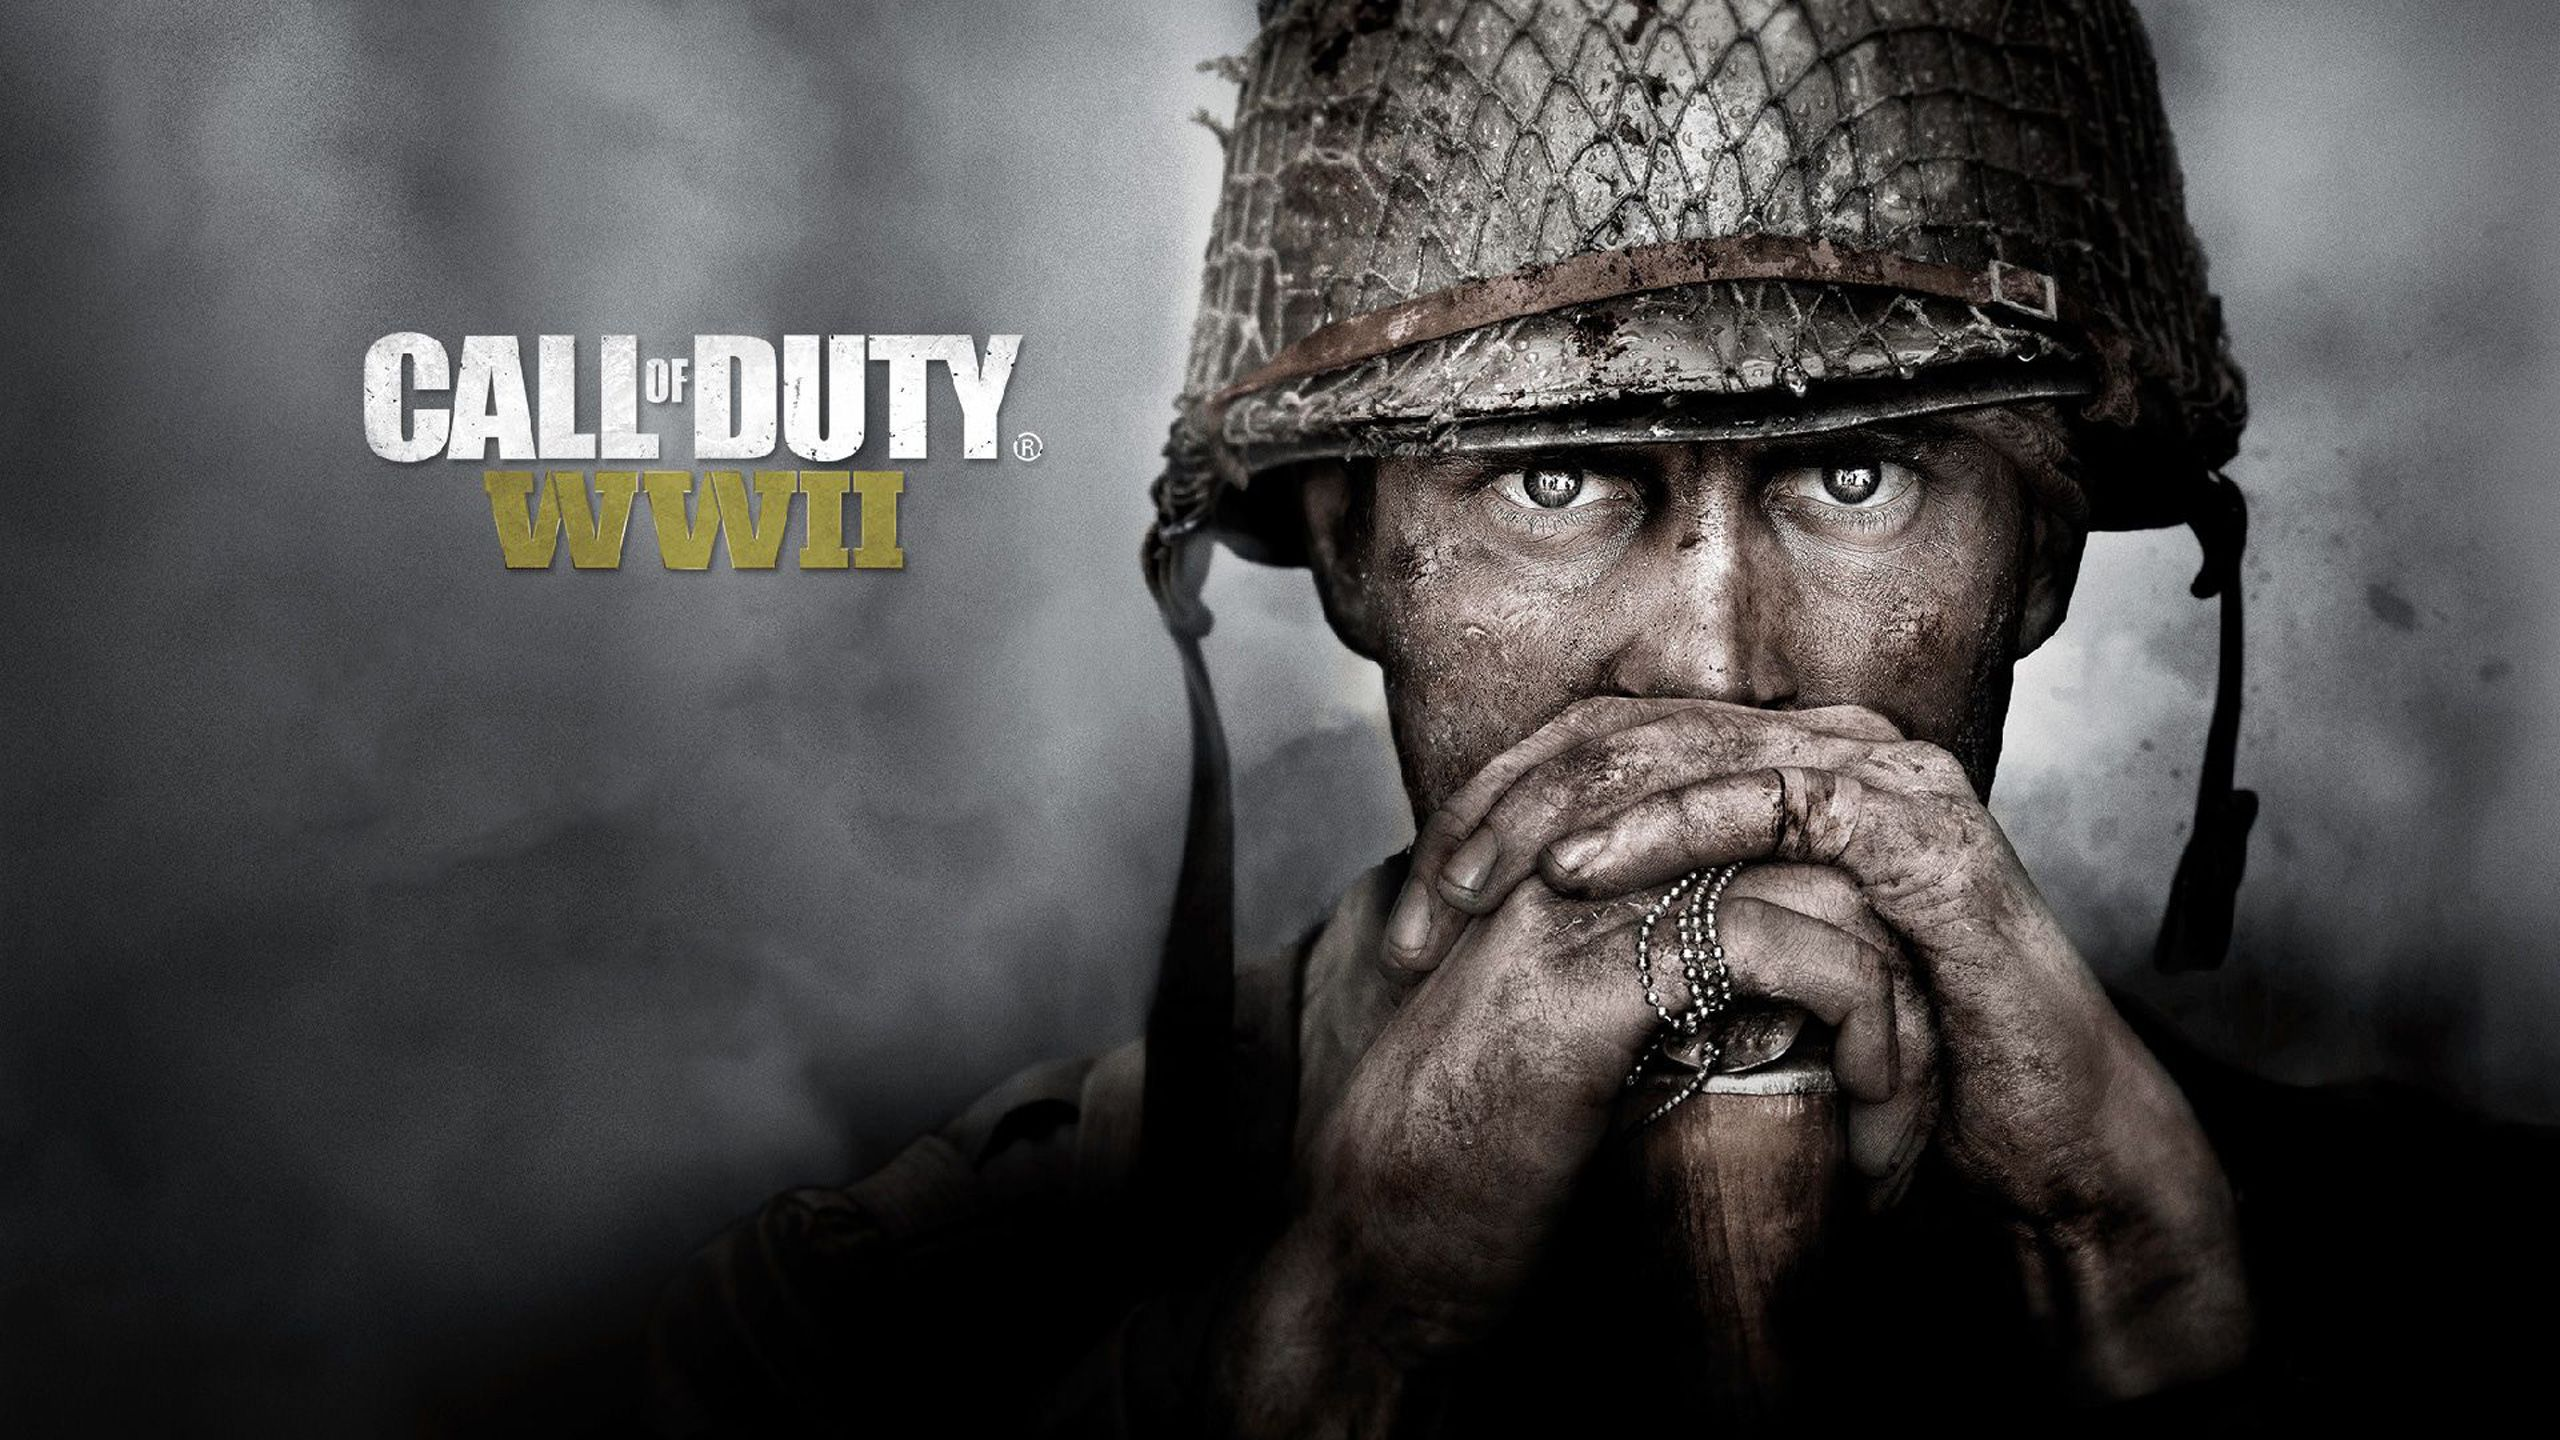 Call Of Duty World War 2 Wallpapers Top Free Call Of Duty